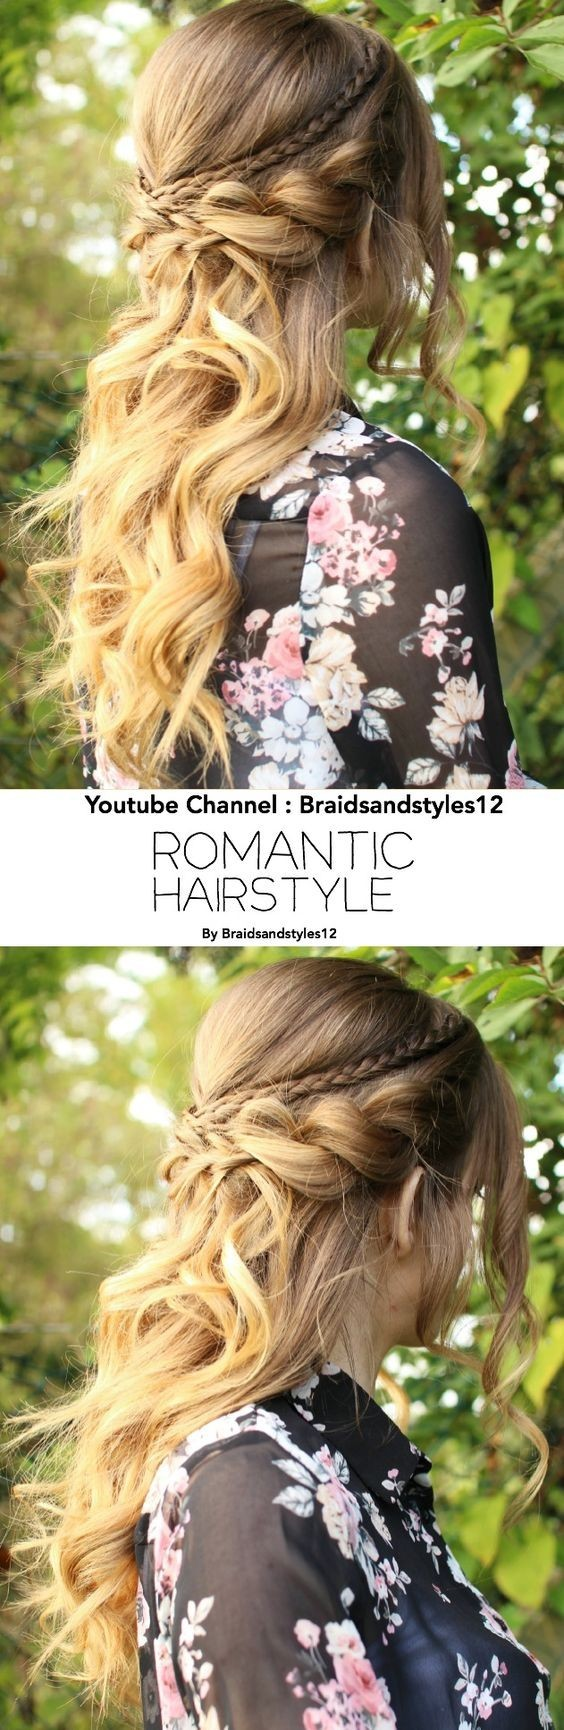 Beautiful, Romantic half up half down hairstyle with Curls - Homecoming Hairstyle